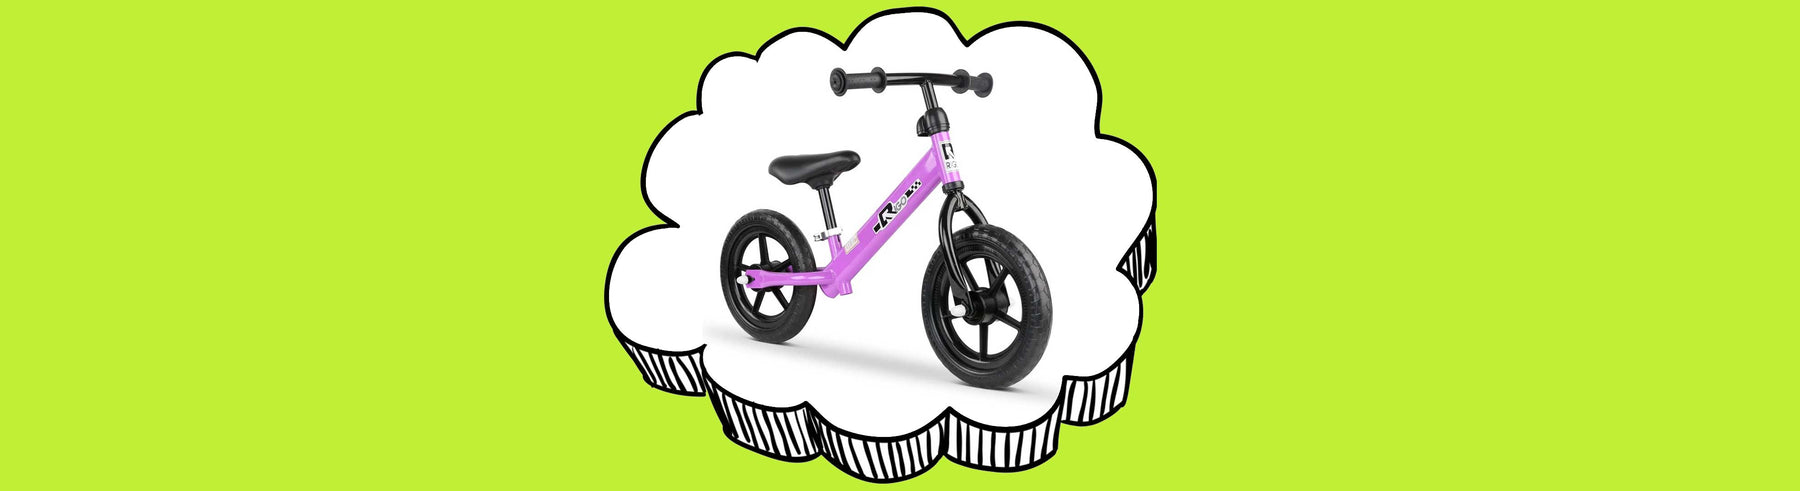 Track Star 12 Inch Kids Balance Bike